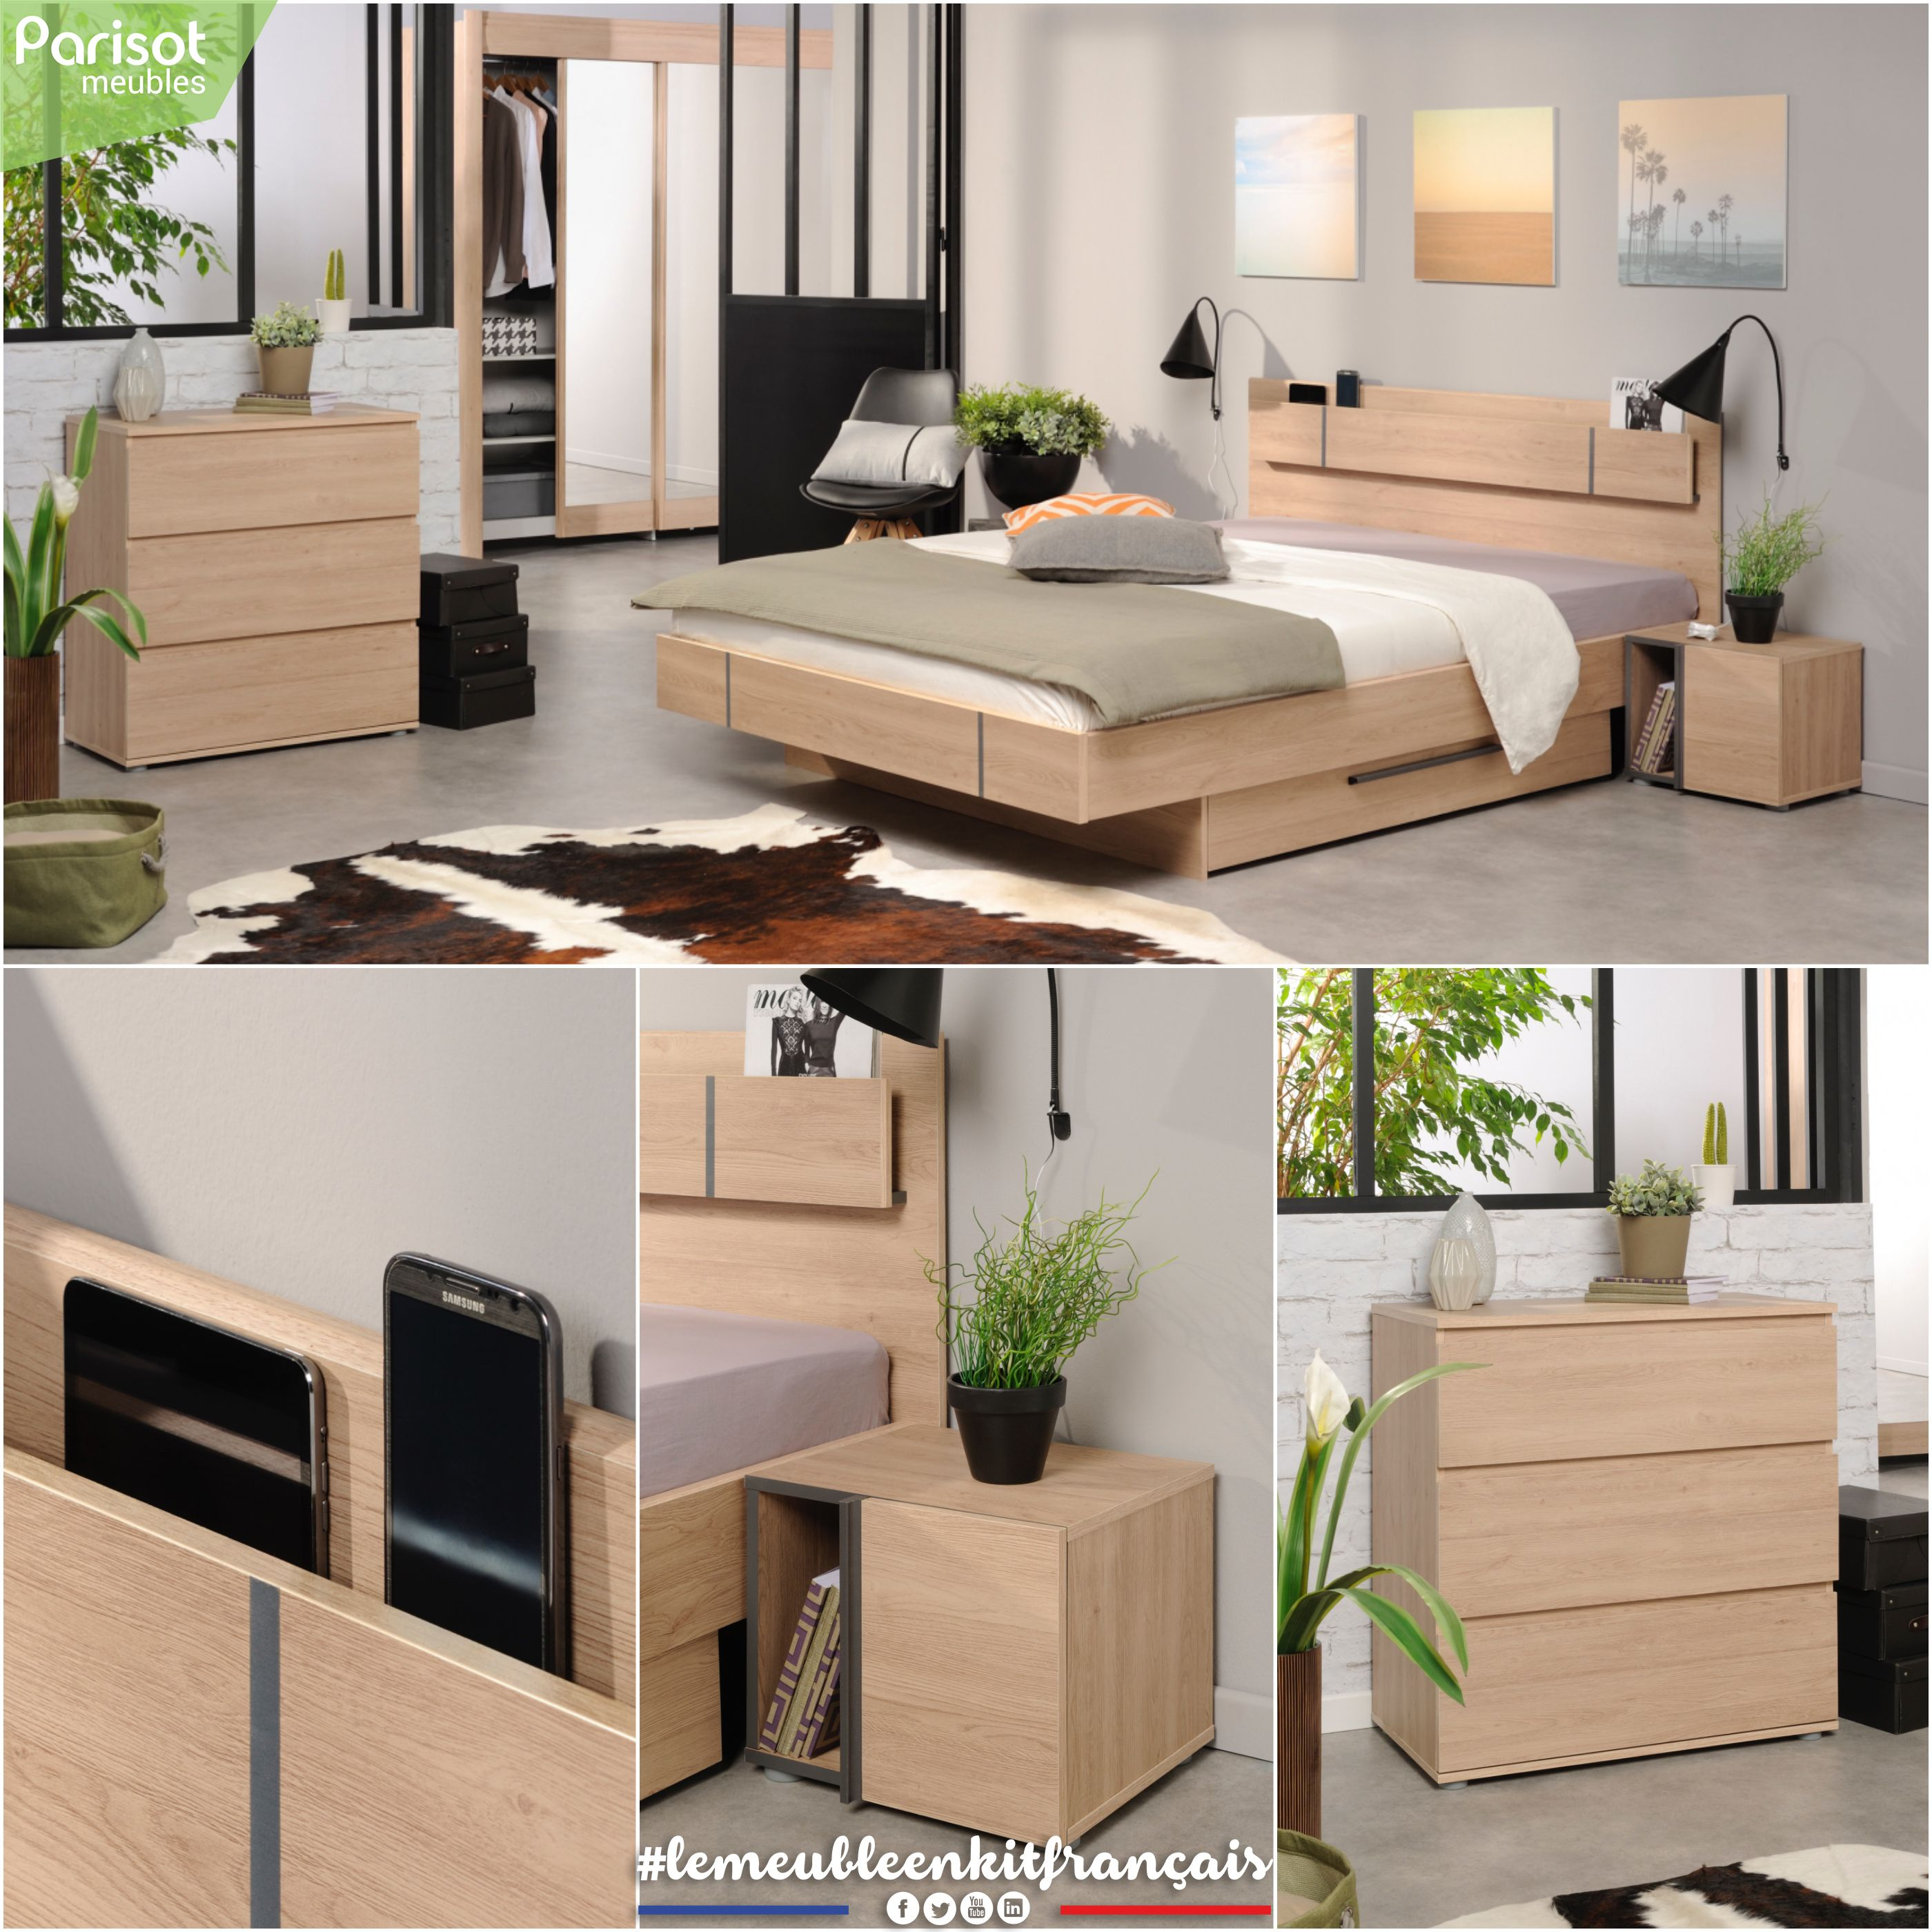 Romy By Parisot Meubles Romy Is A Functional Bedroom Designed To Facilitate The Use Of Multimedia Devices Pratical The Bed And Bedroom Design Furniture Bed